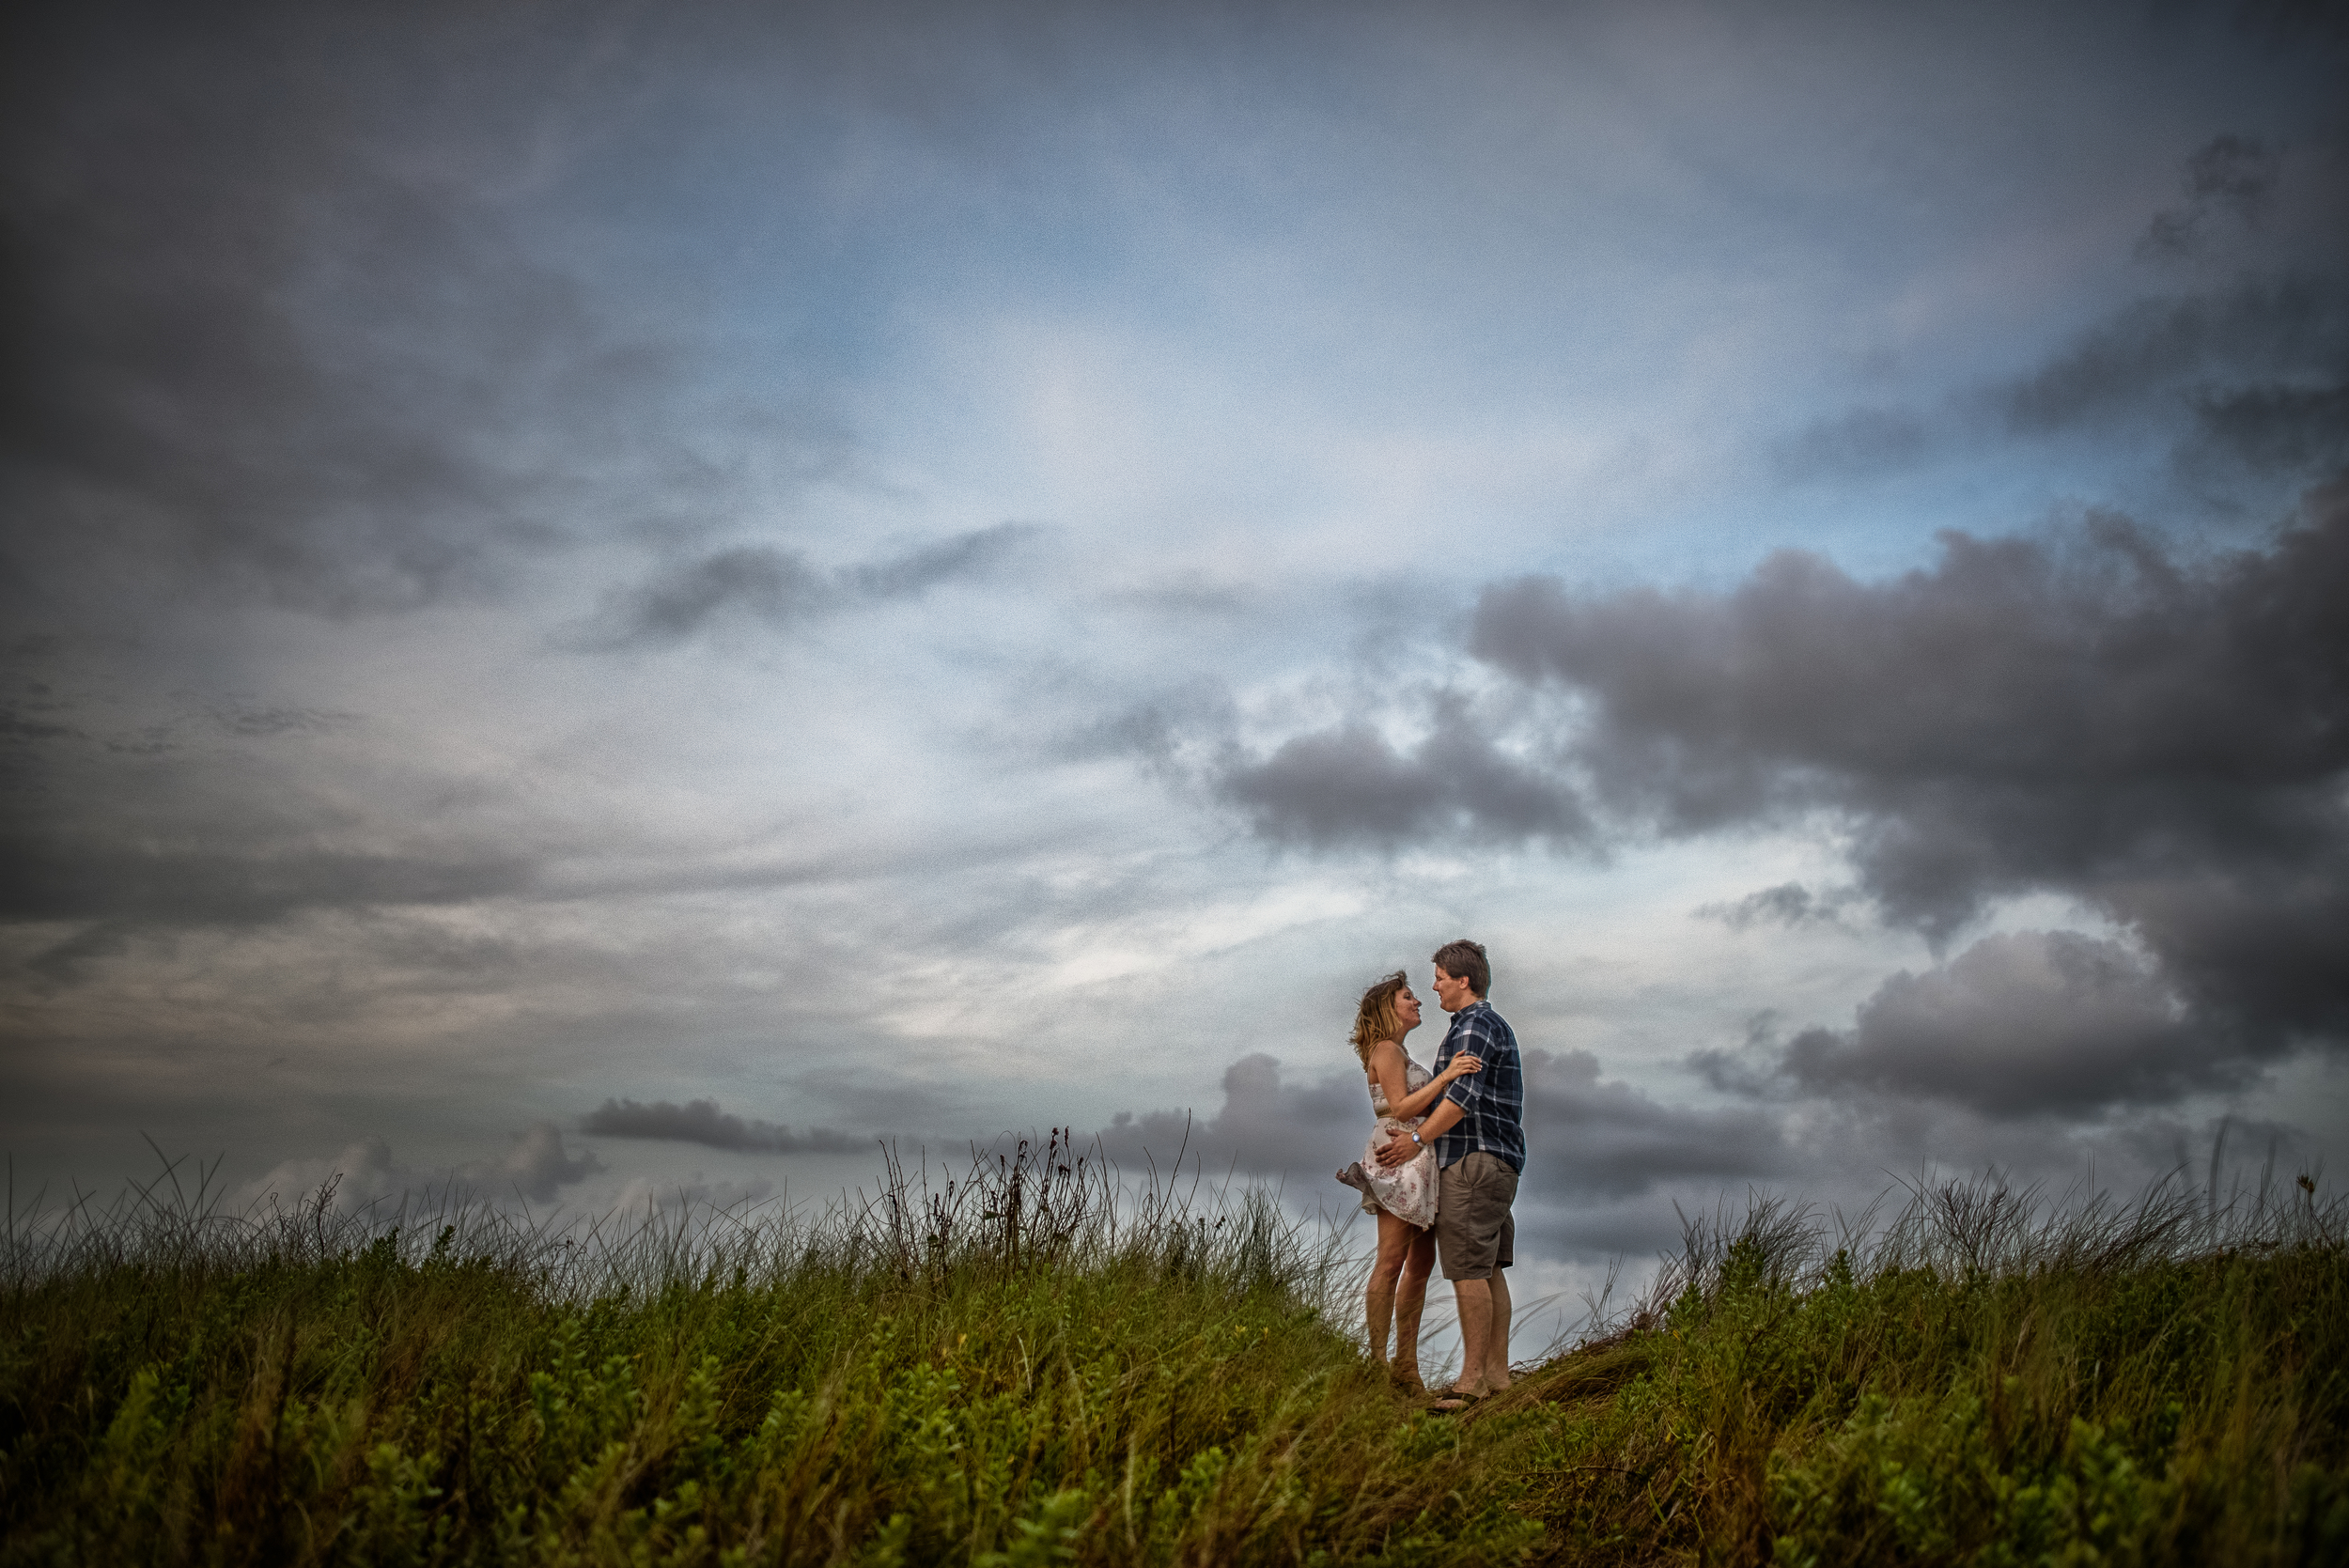 st-augustine-wedding-photographer-engagement-session-washington-oaks-florida